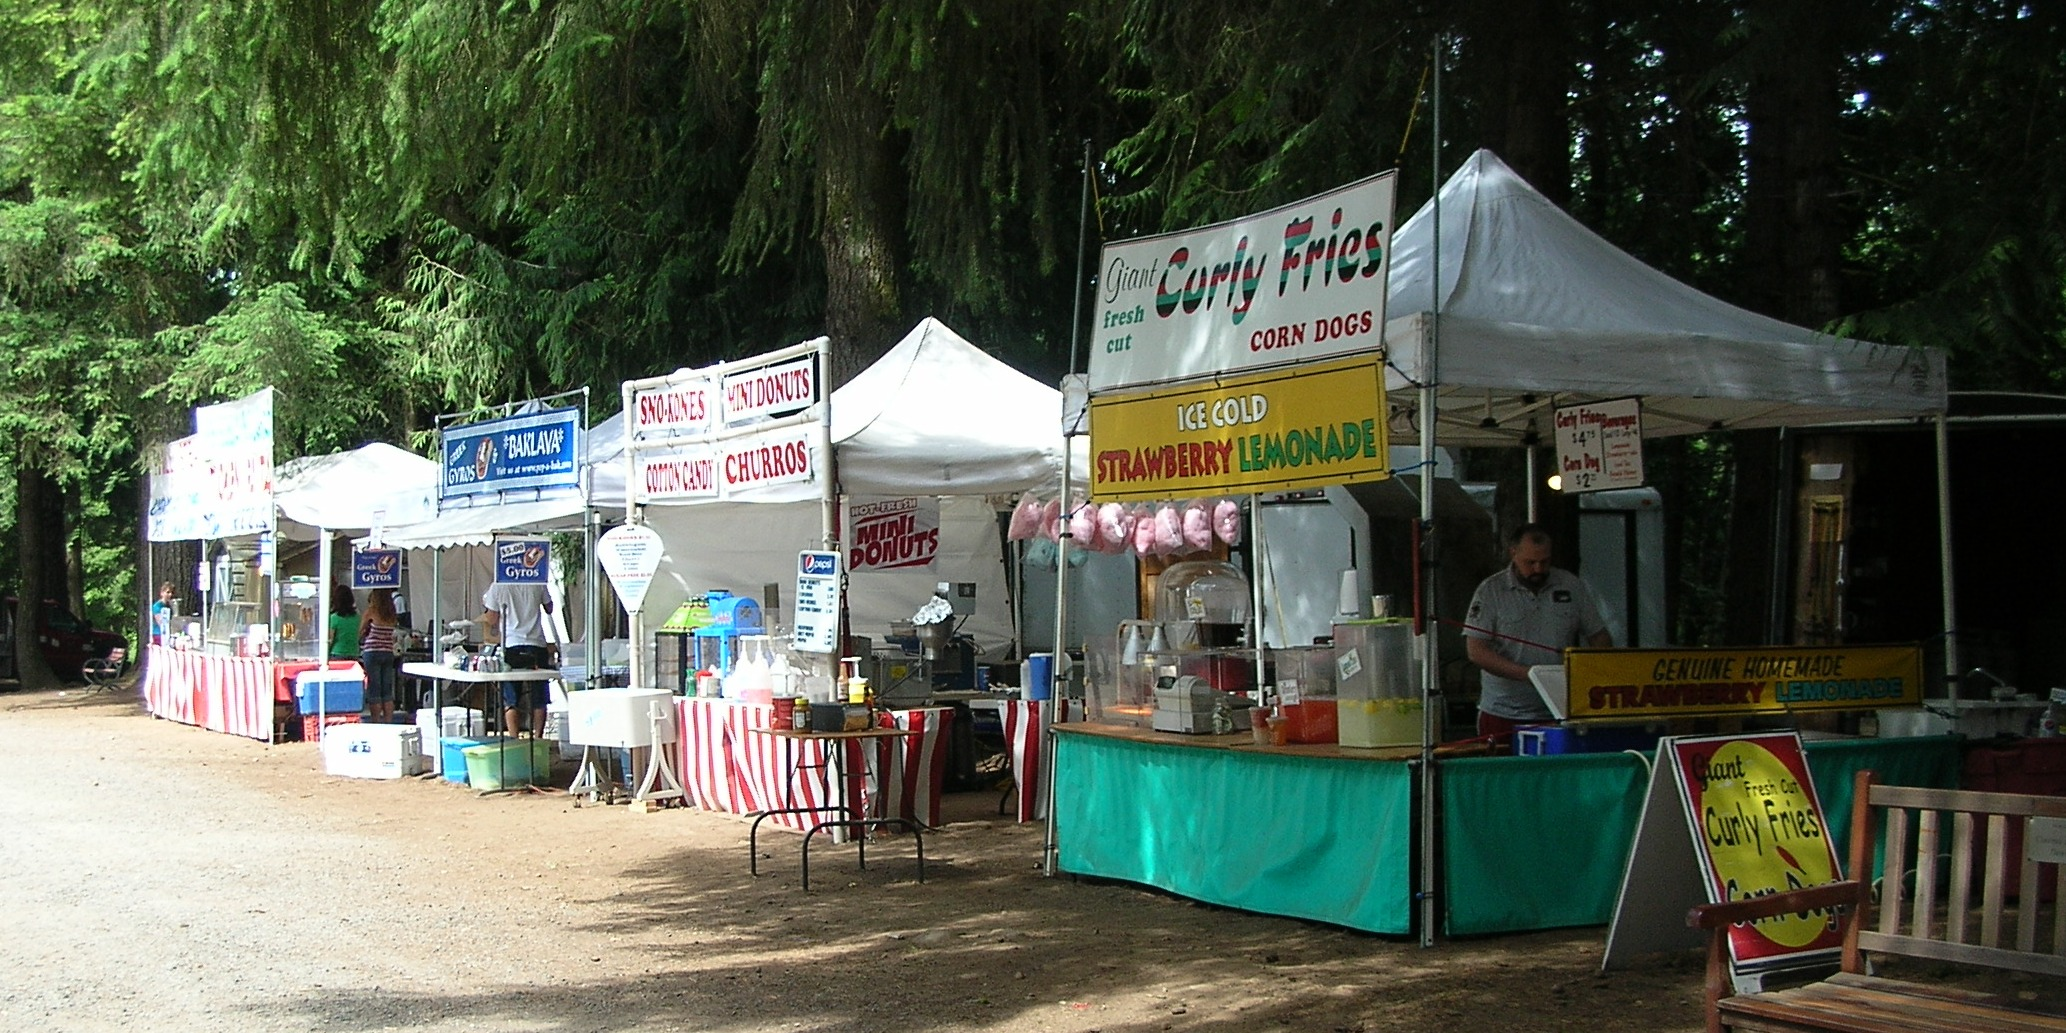 small concession tents at small festival & amboy2011 | Fair Food Food Carts and the Food Concession Business